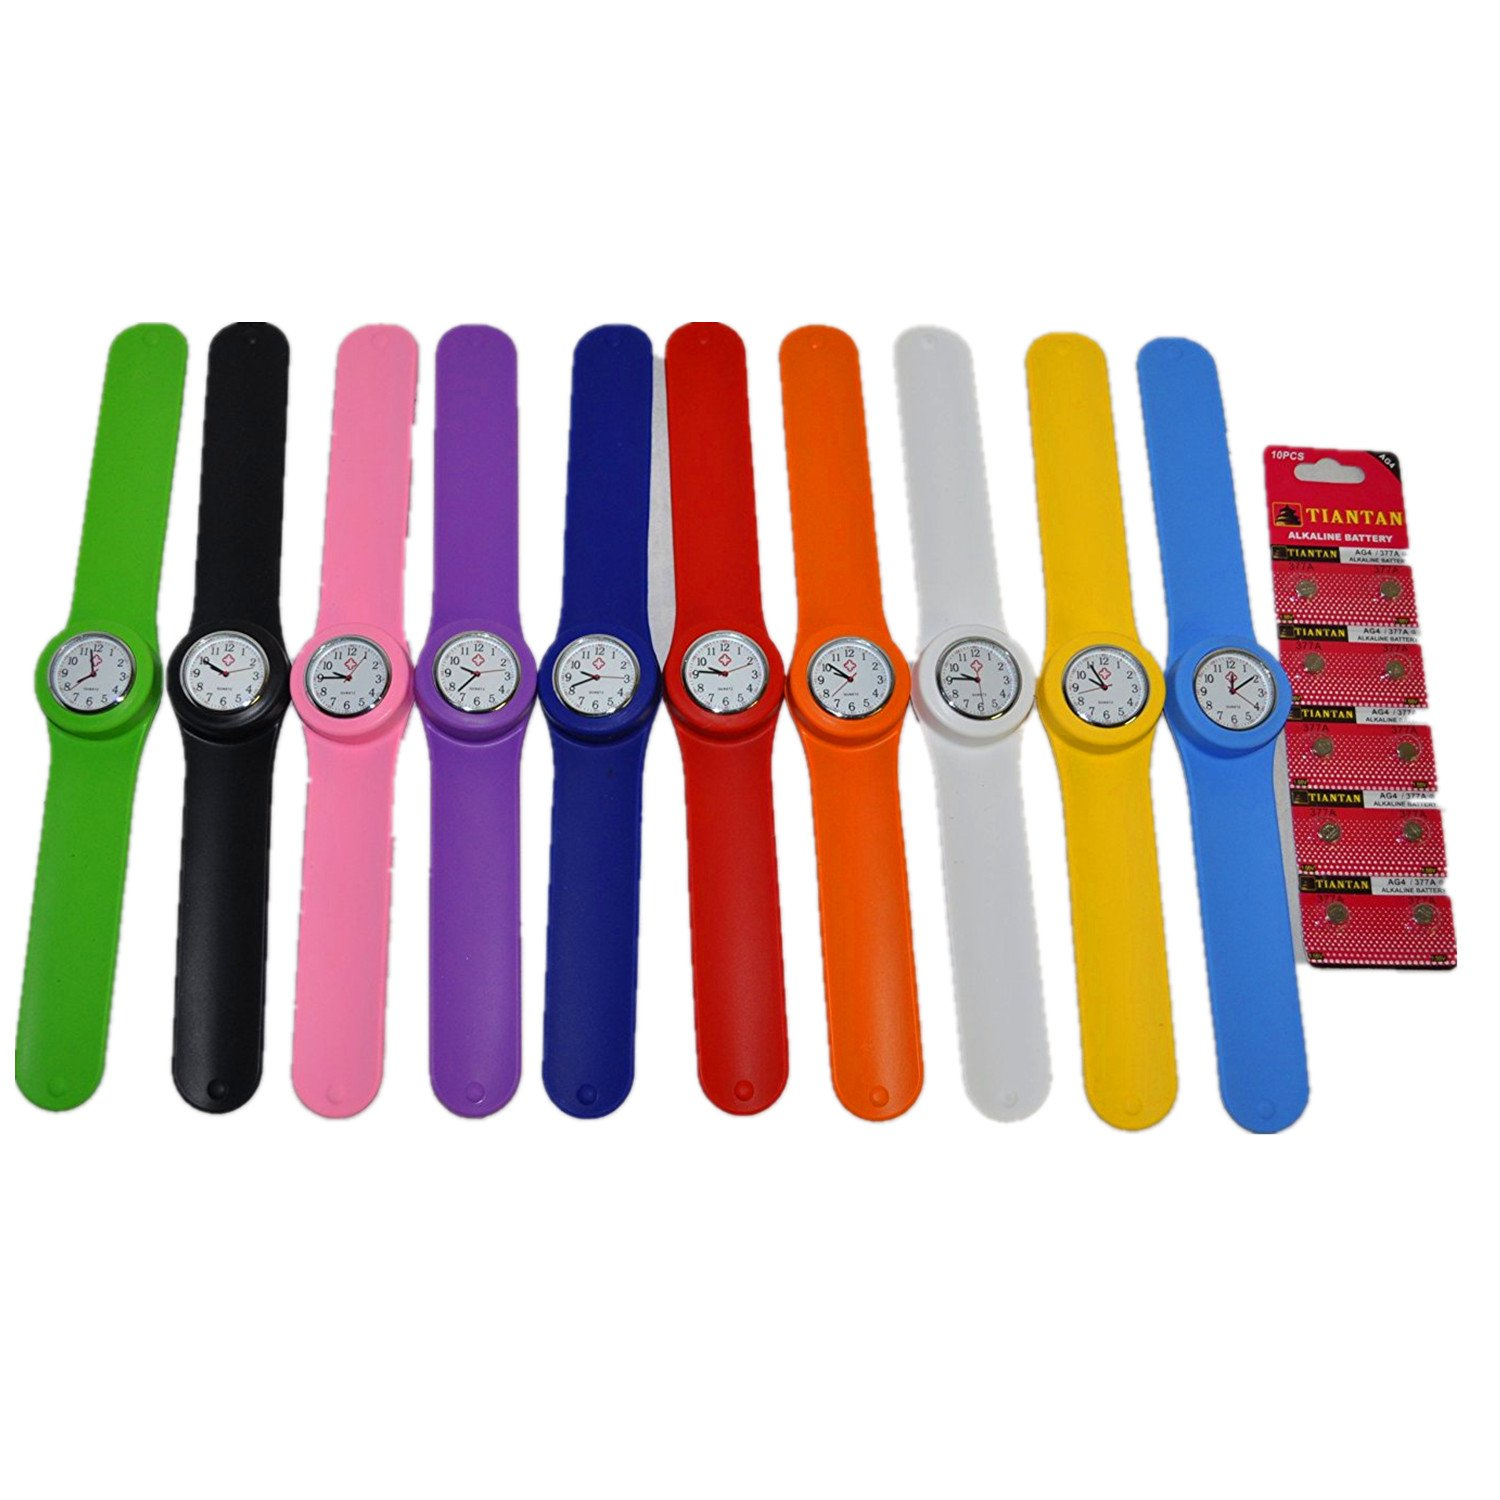 10 Slap Watch set Wholesale Lot - Full face with all 12 numbers